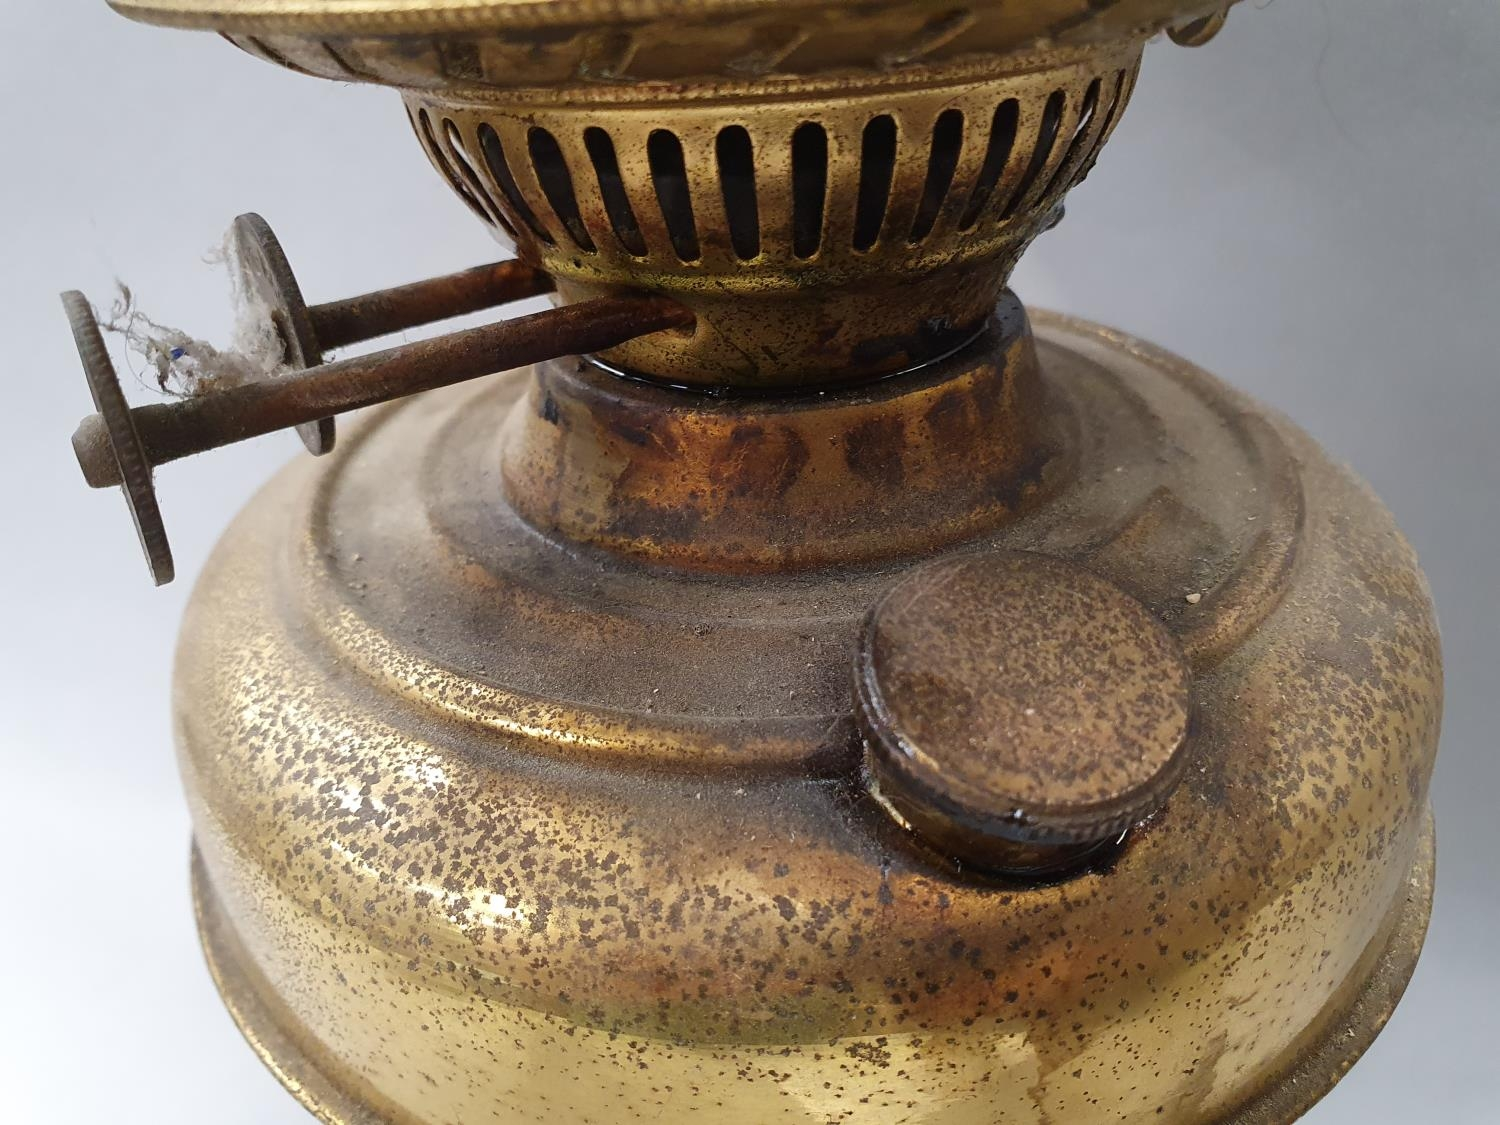 Brass oil lamp with flue and pheasant globe. - Image 5 of 7